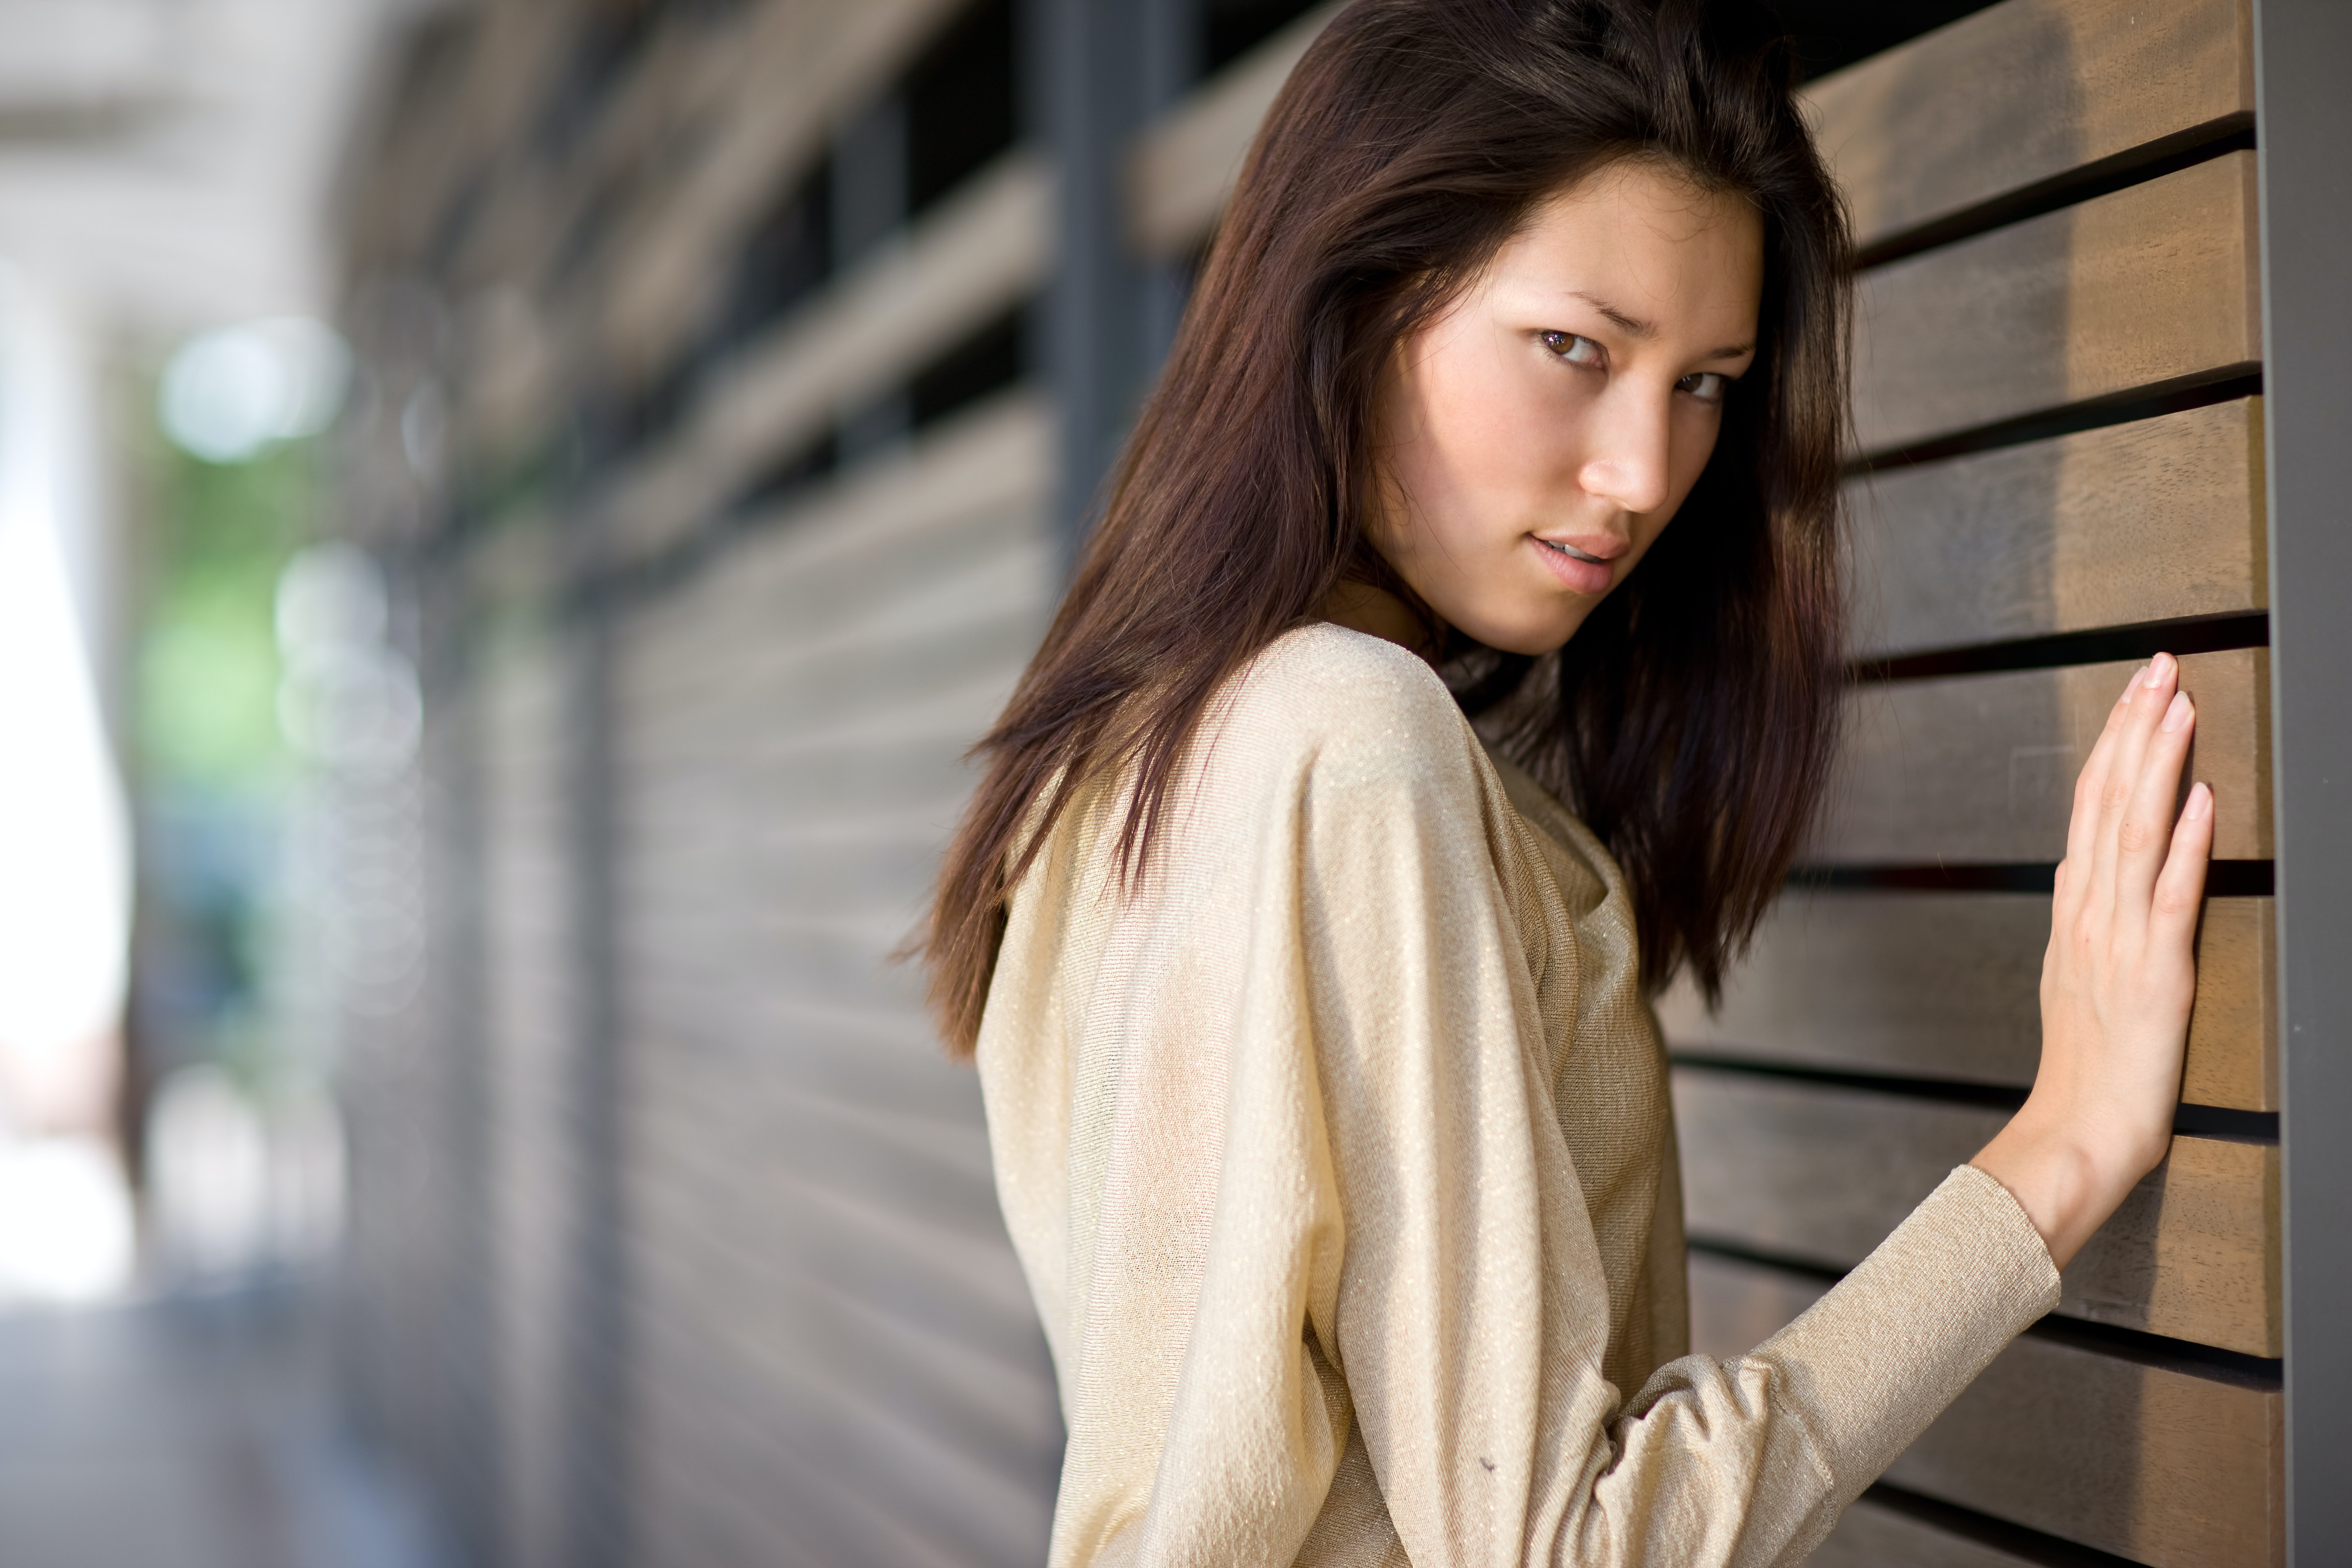 shallow focus photography of woman in beige long-sleeved shirt